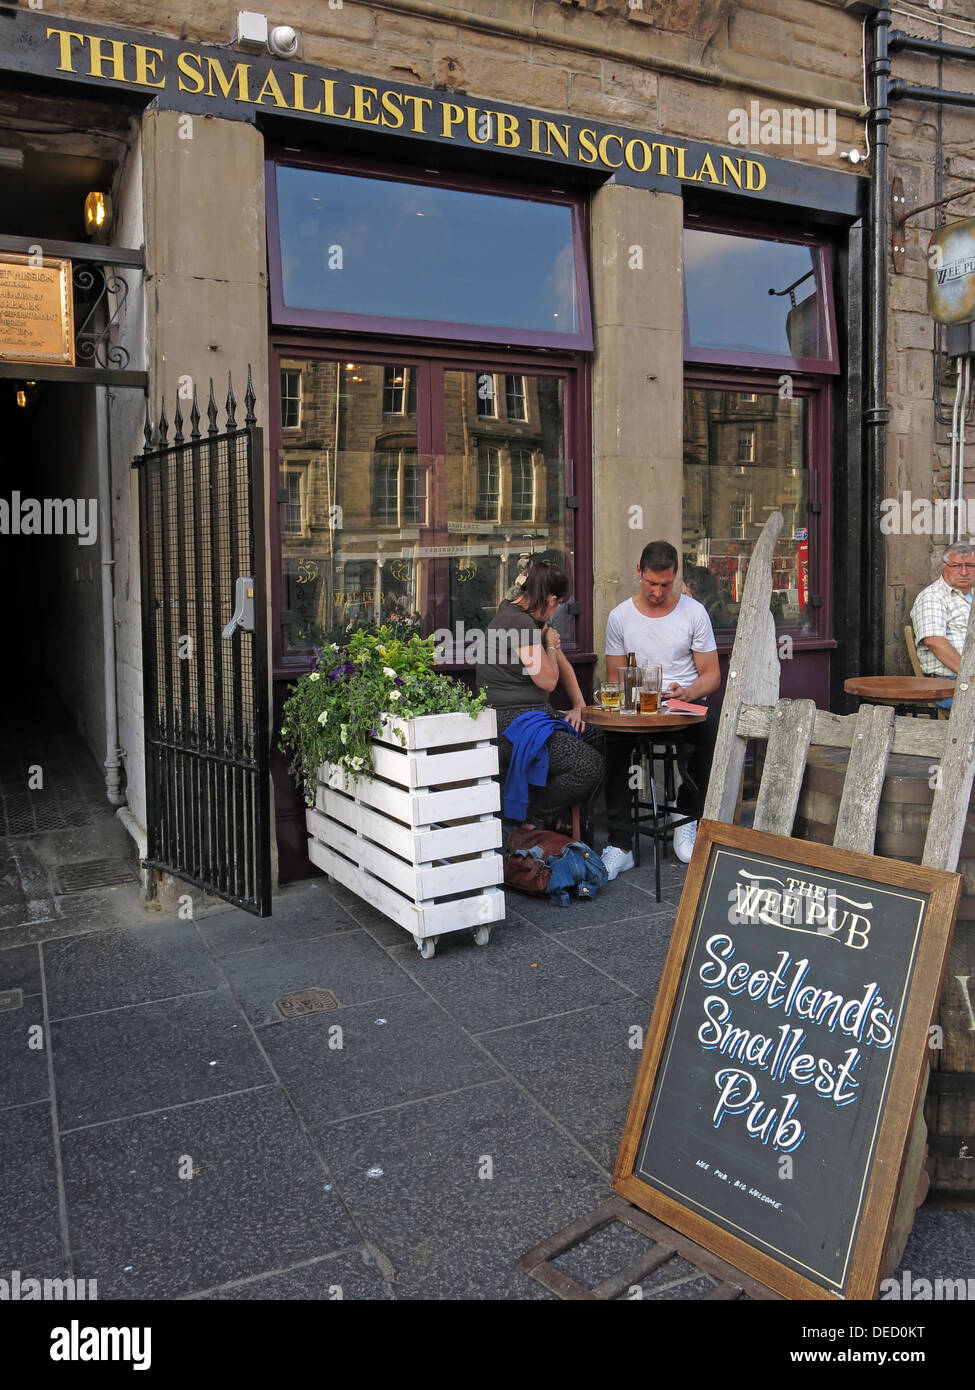 The,Smallest,Pub,in,Scotland,Grassmarket,Edinburgh,Scotland,UK,old town,old,town,with,people,drink,drinking,GoTonySmith,oldtown,Buy Pictures of,Buy Images Of